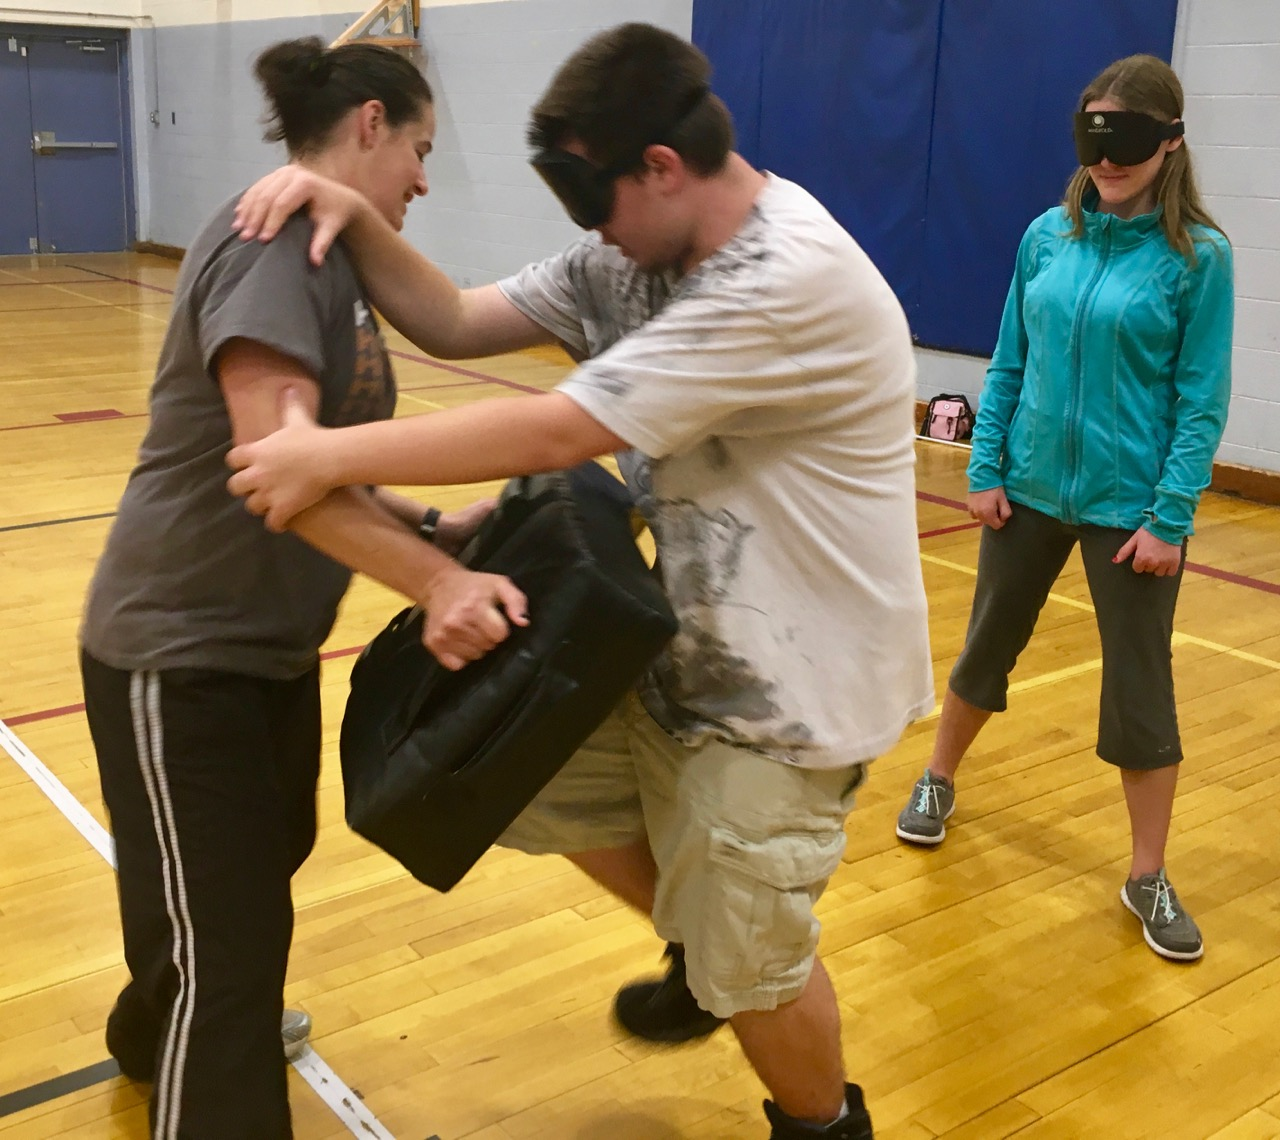 Masson learns how to put power in forward knee strikes while Rachael holds the pad. Maggie waits her turn to give it a try